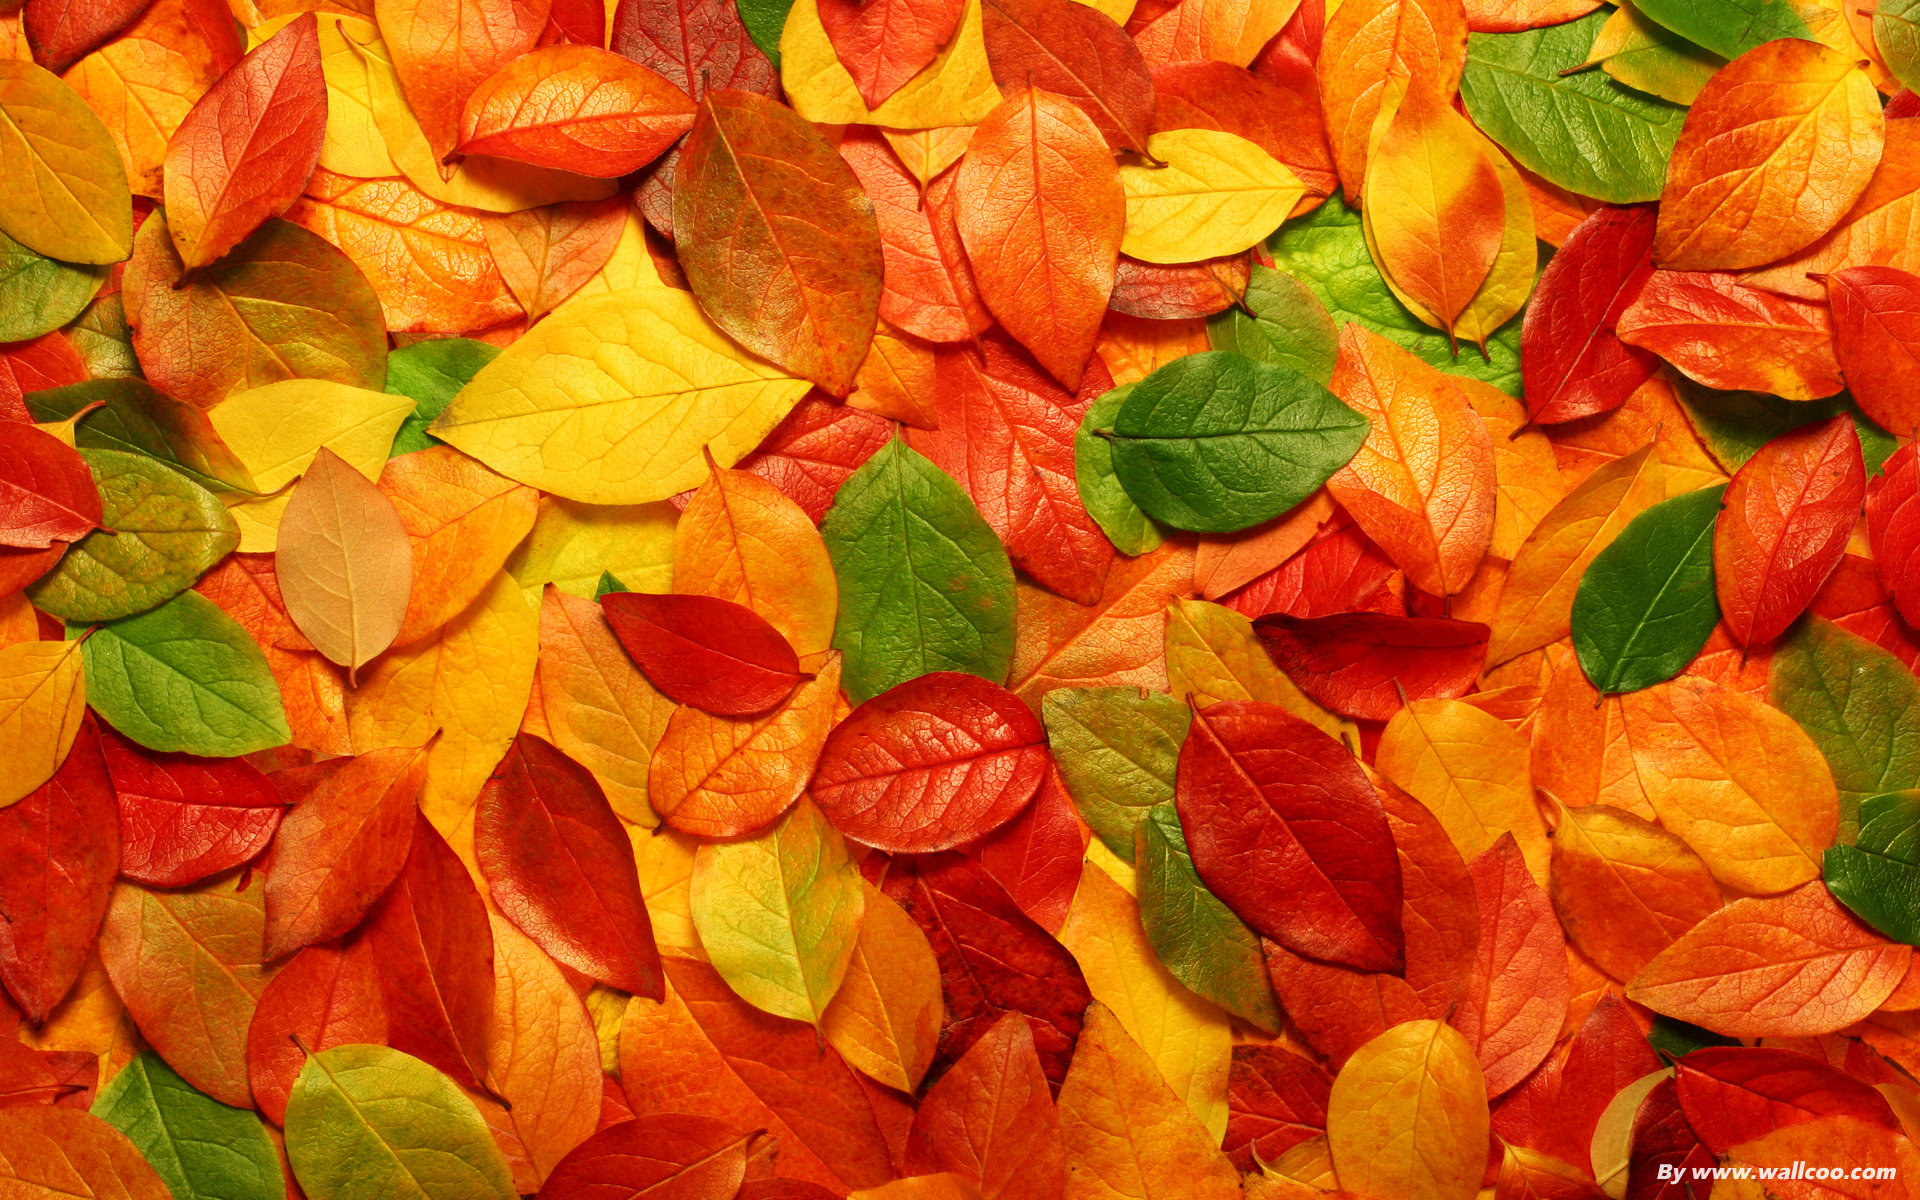 Wallpapers Red Leaf Beautiful Wallpapers Red Leaf Beautiful Leaves Nature 1920x1200